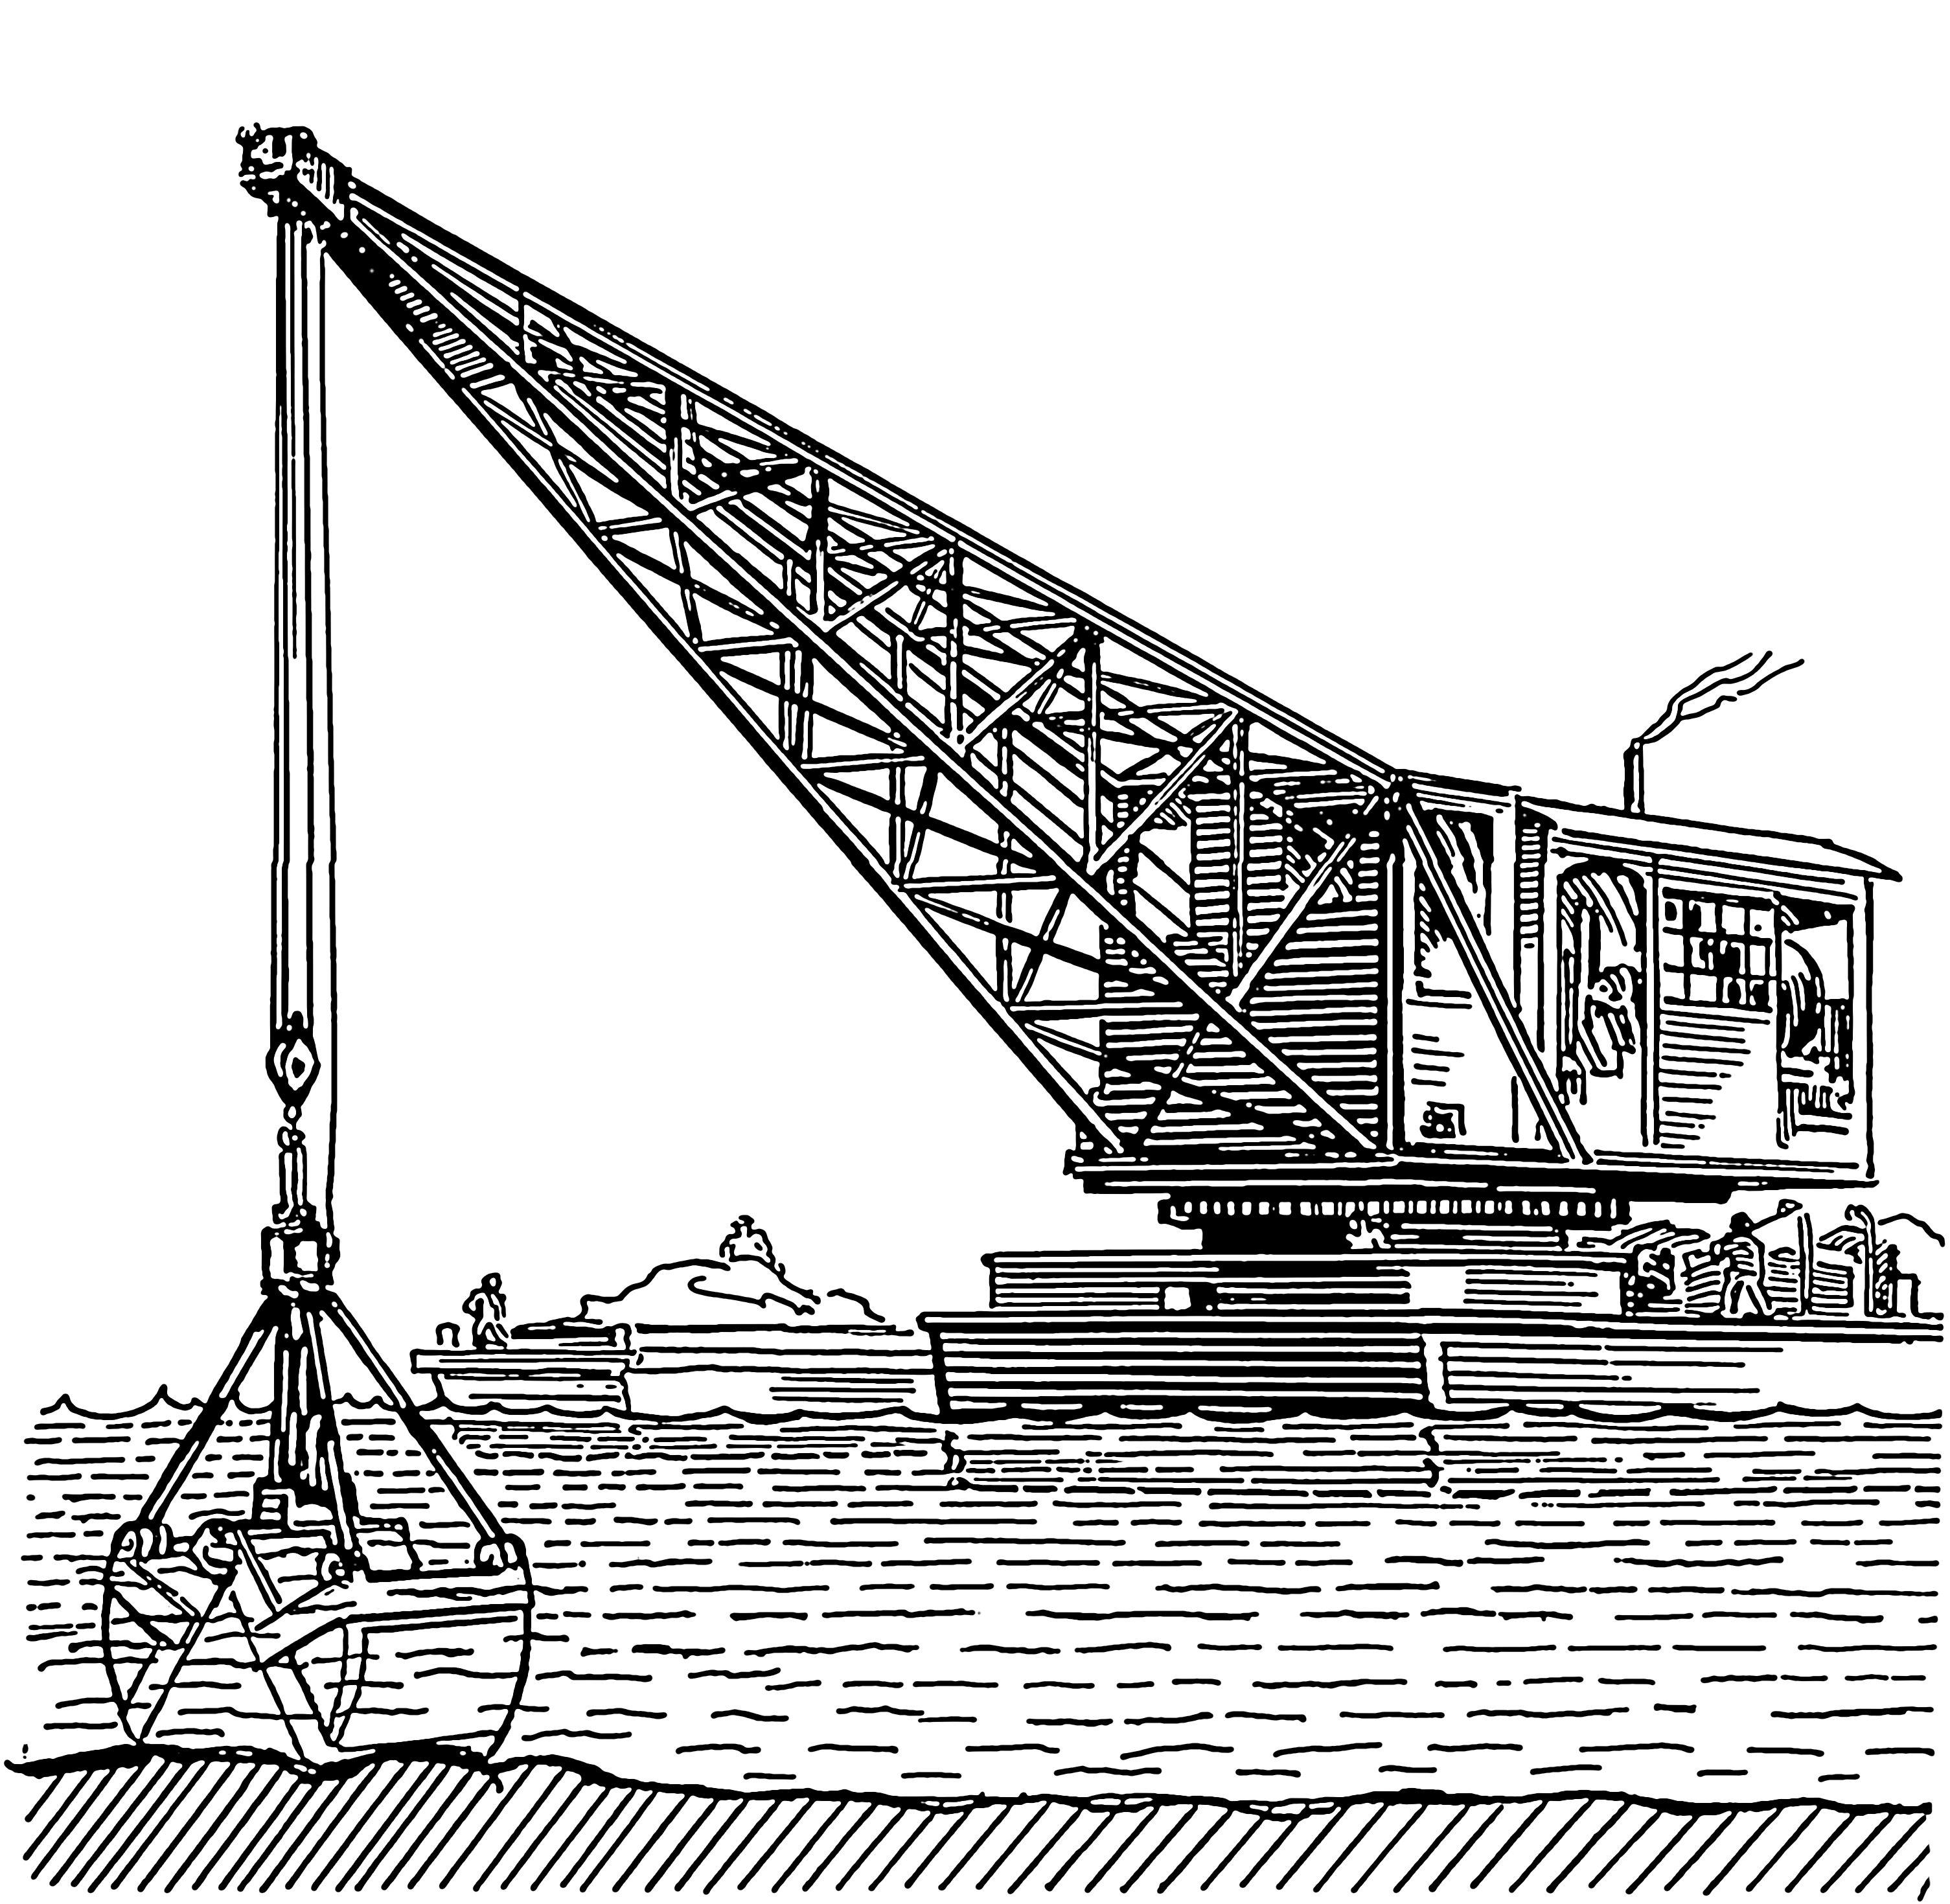 Dredging Wikiwand